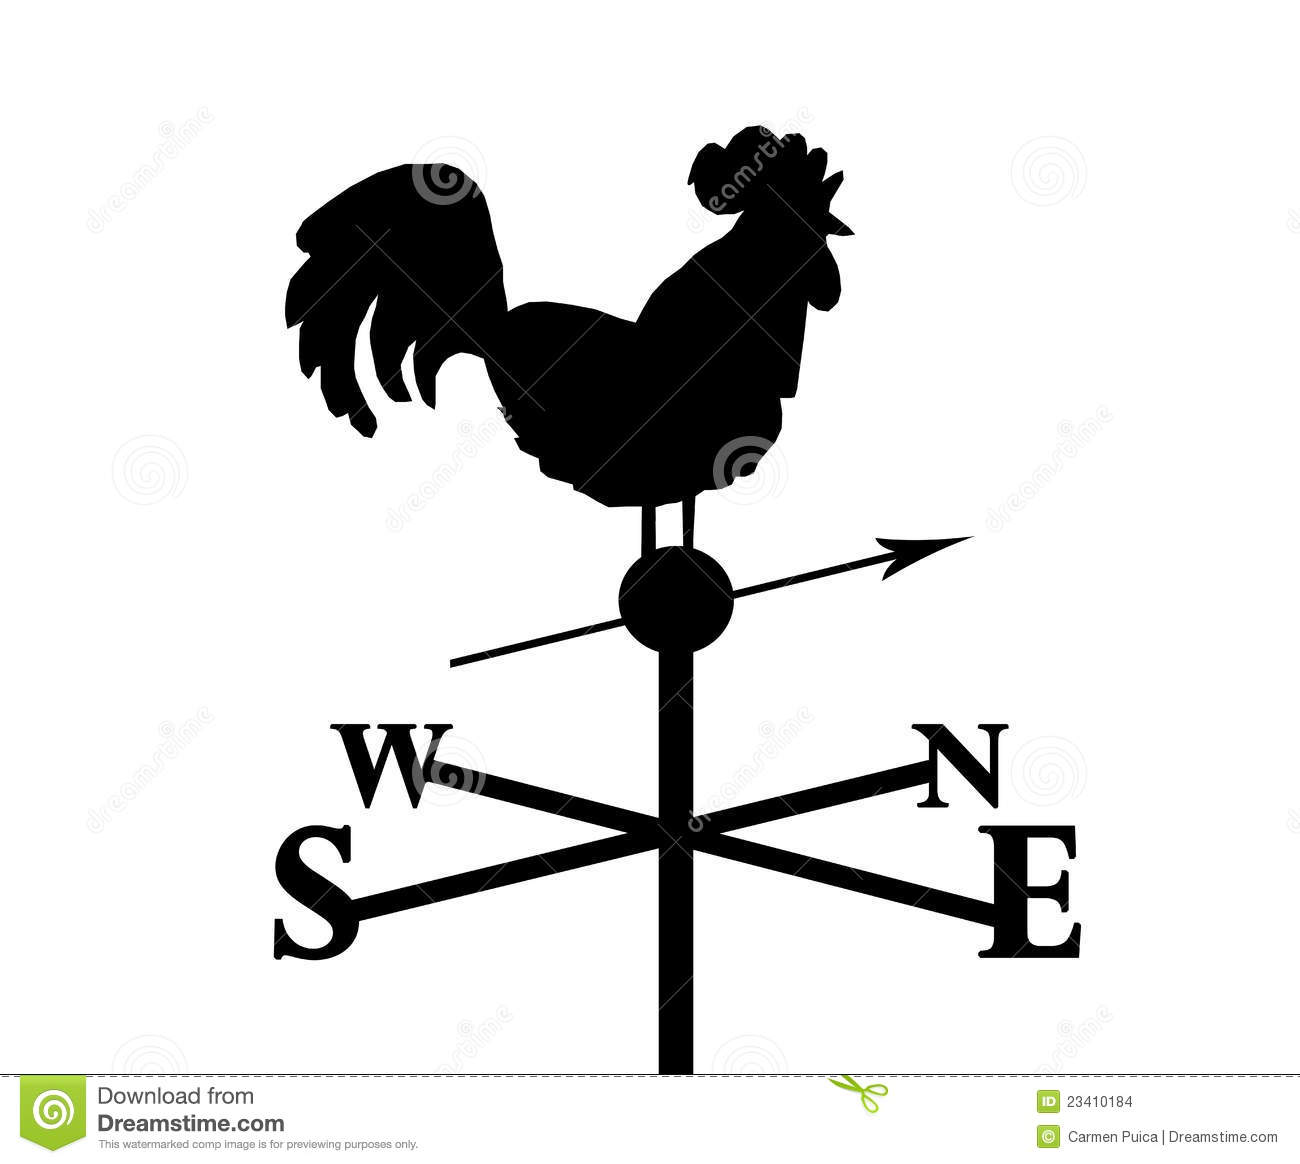 Singing Rooster pointing North. Weather Vane. Black and white ...